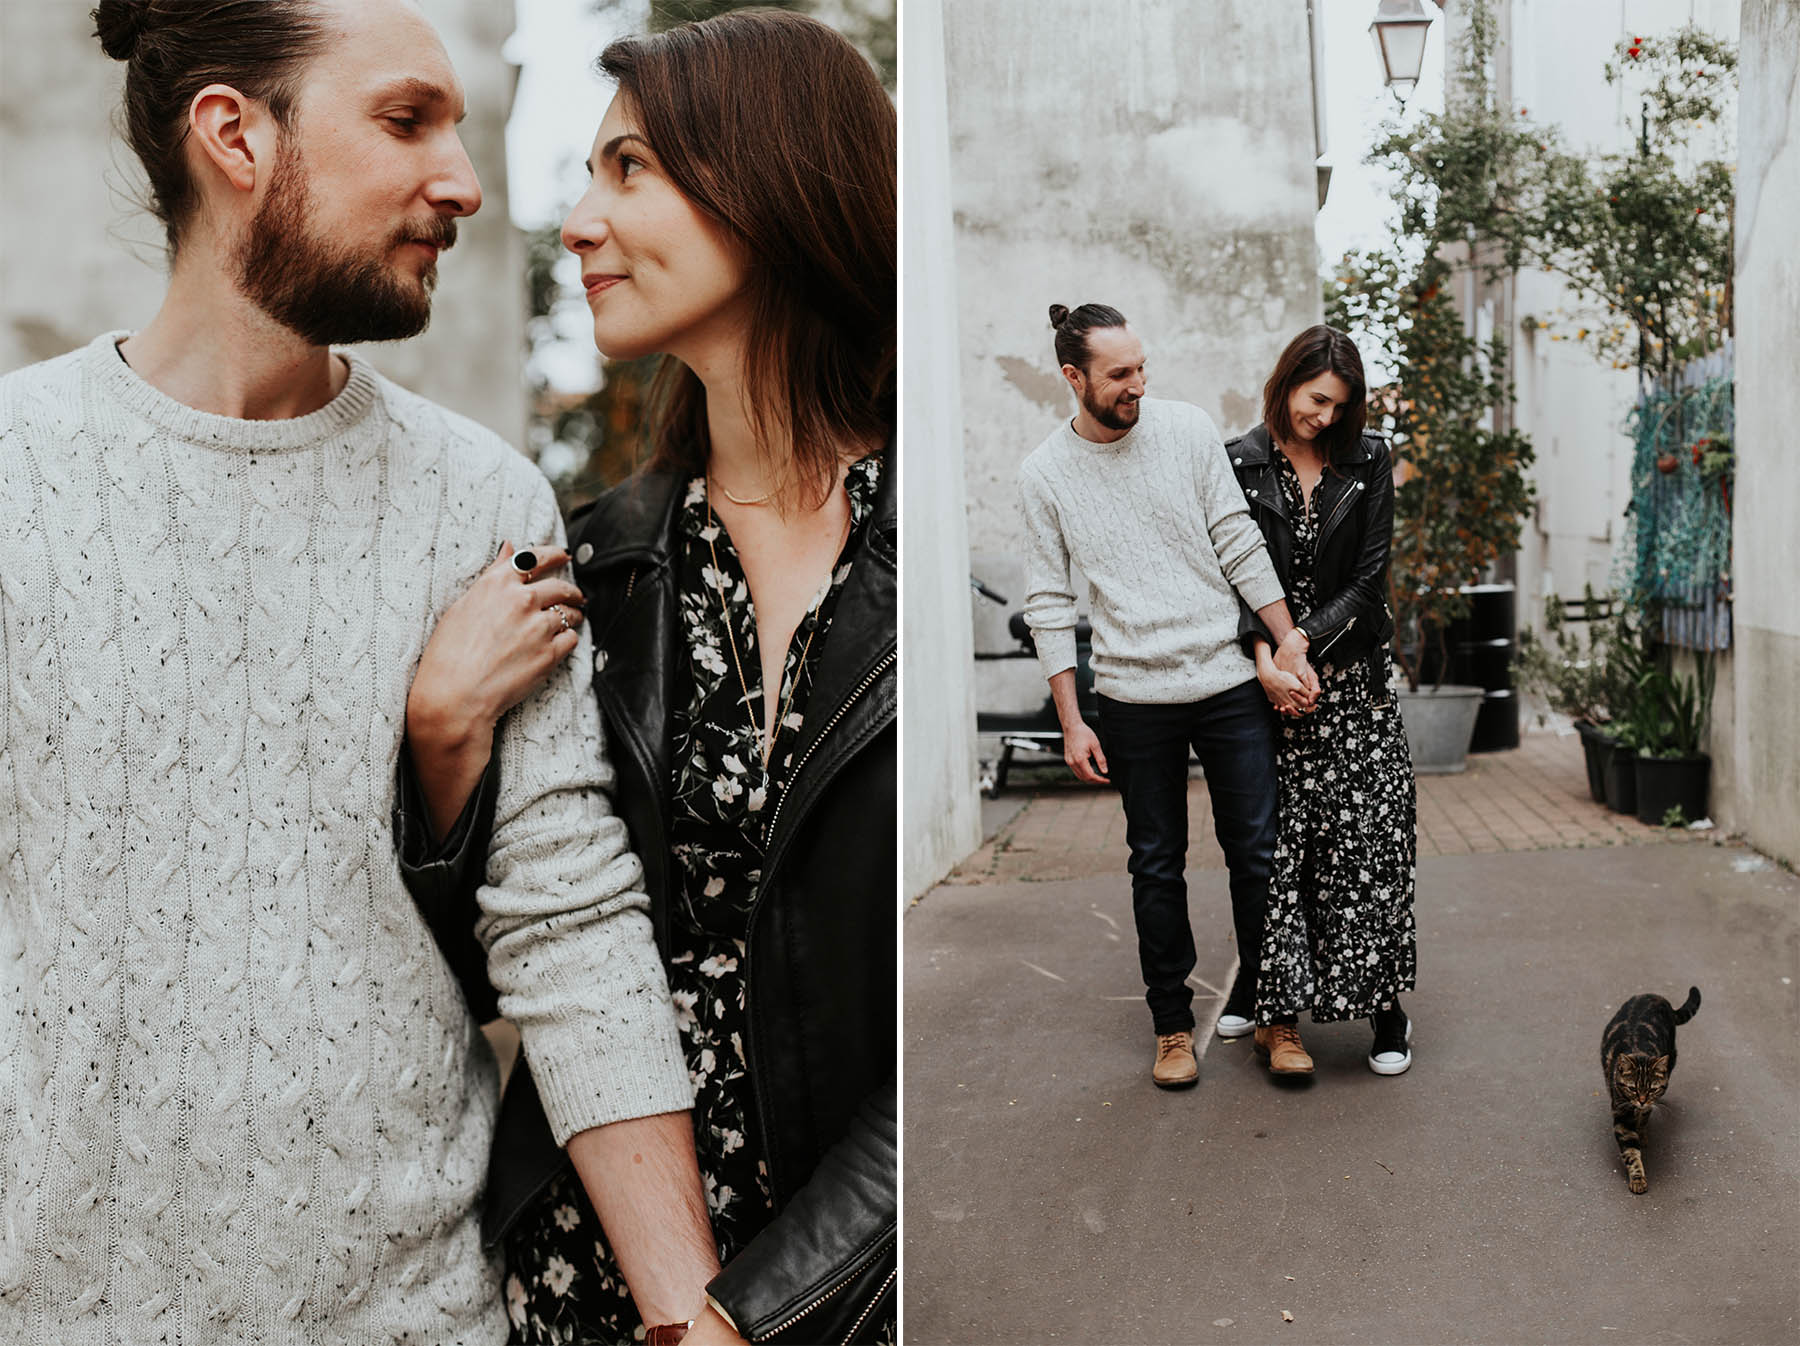 seance_engagement_trentemoult_flavie_nelly_photographe_nantes-4